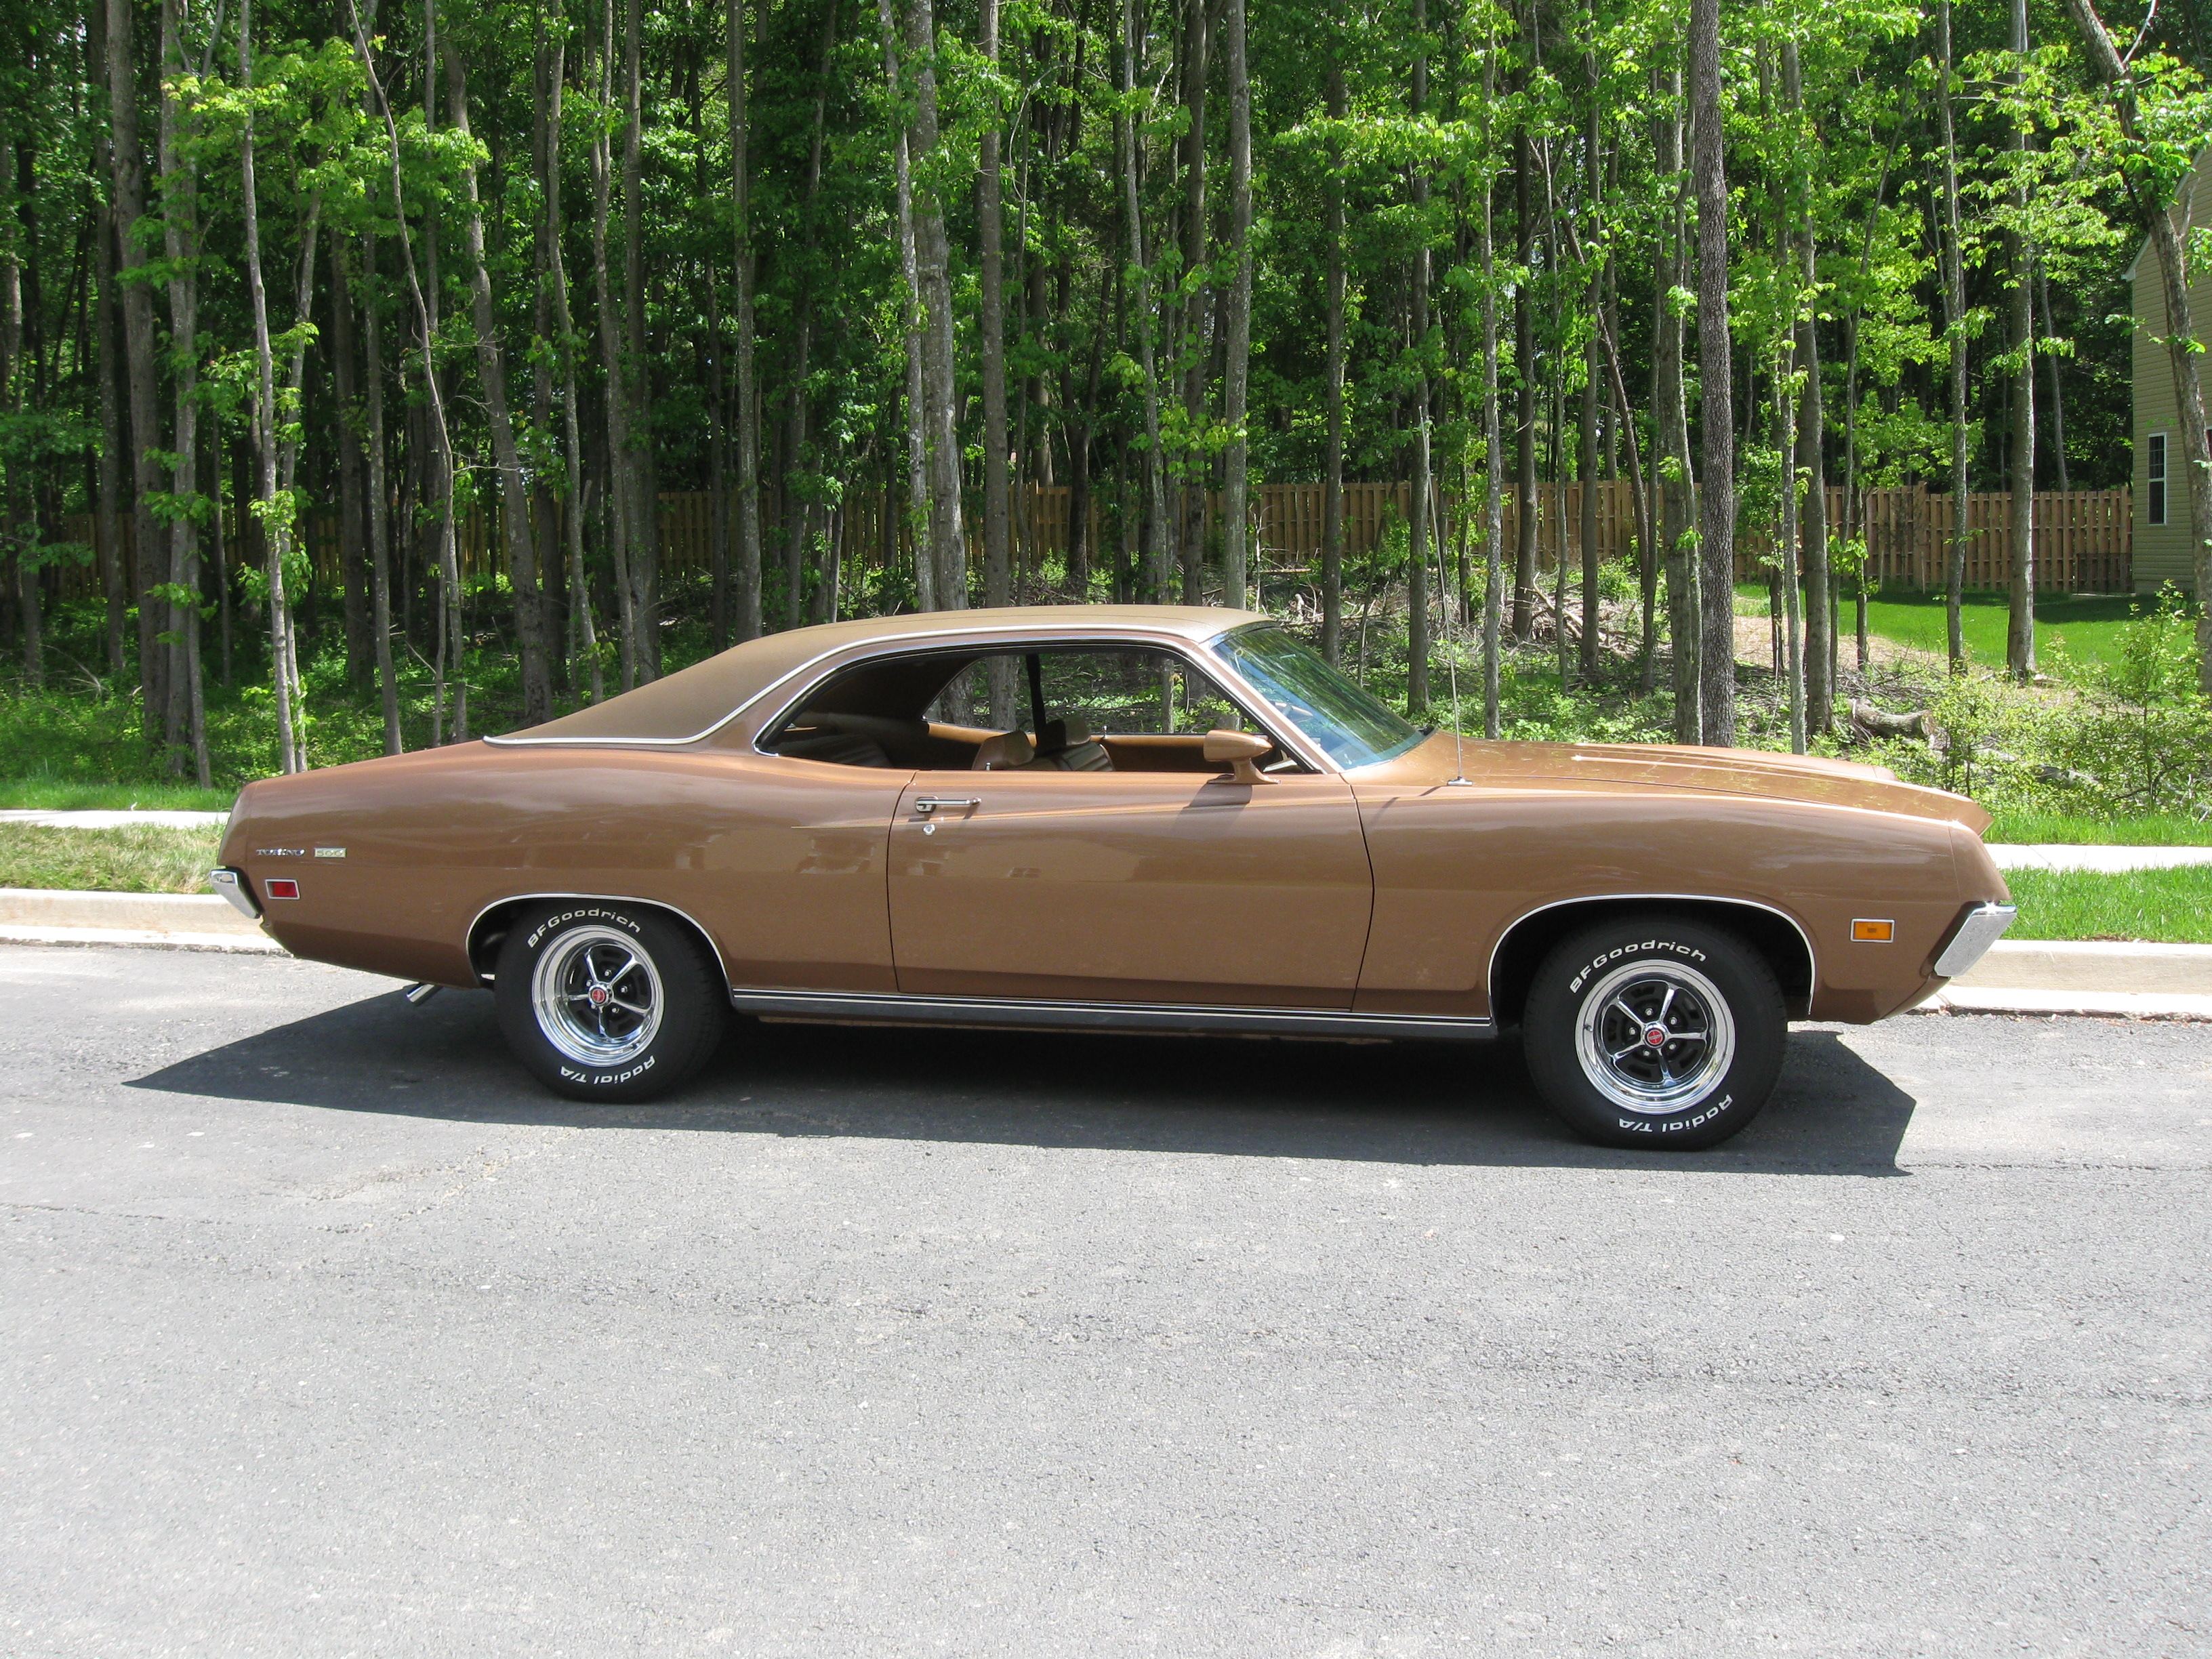 Ford Torino Painted Popular Ginger Classic Classics - Nearest ford dealership